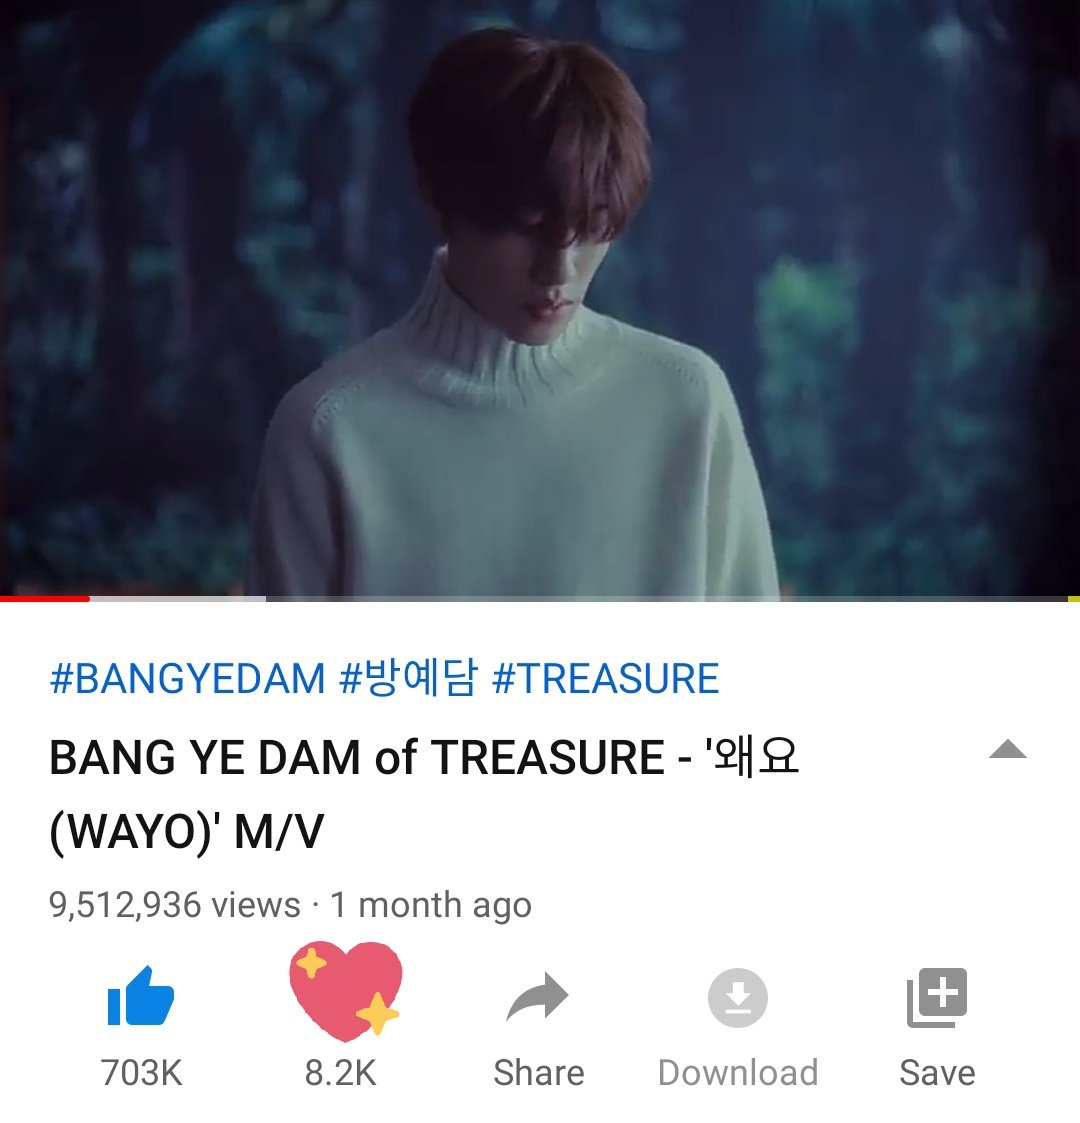 [INFO] BANGYEDAM - WAYO (왜요)   Current views: 9.512.936 Likes: 703k likes  500k more to 10M 🔥 Thank you teume who's still streaming with us 🤗  #TREASURE #BANGYEDAM @treasuremembers